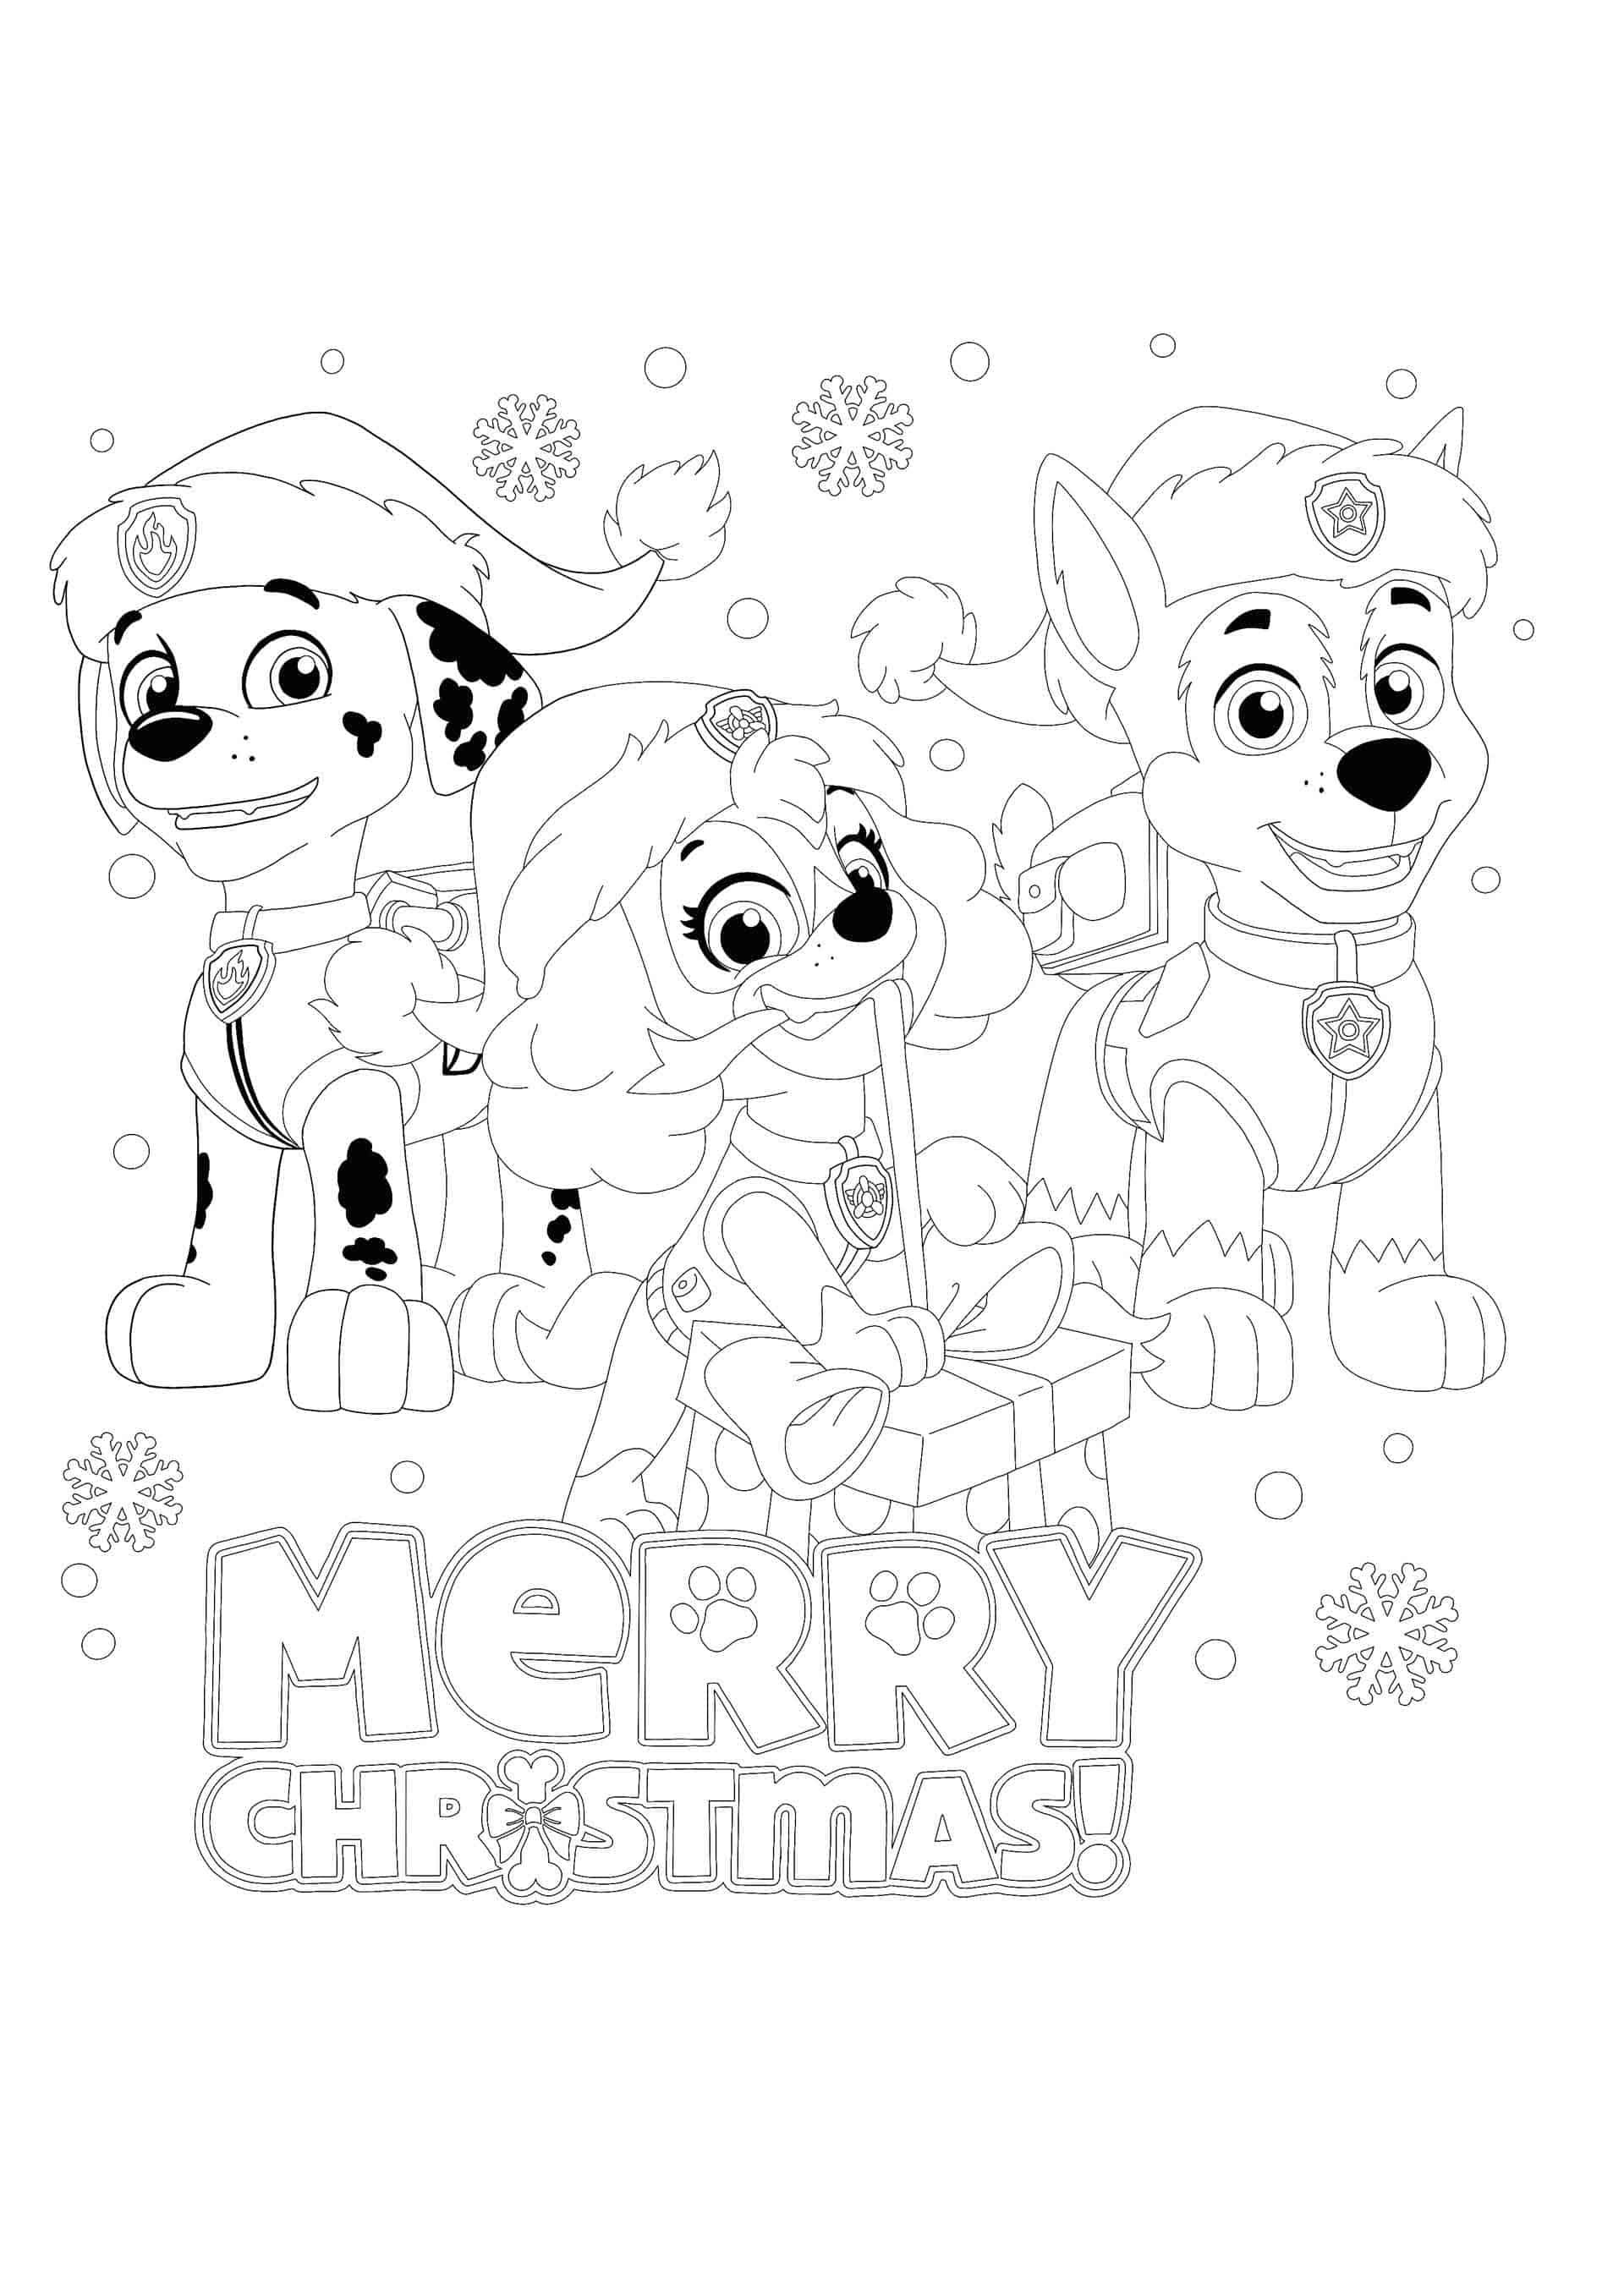 Paw Patrol Christmas Coloring Page Paw Patrol Christmas Paw Patrol Coloring Pages Christmas Coloring Pages